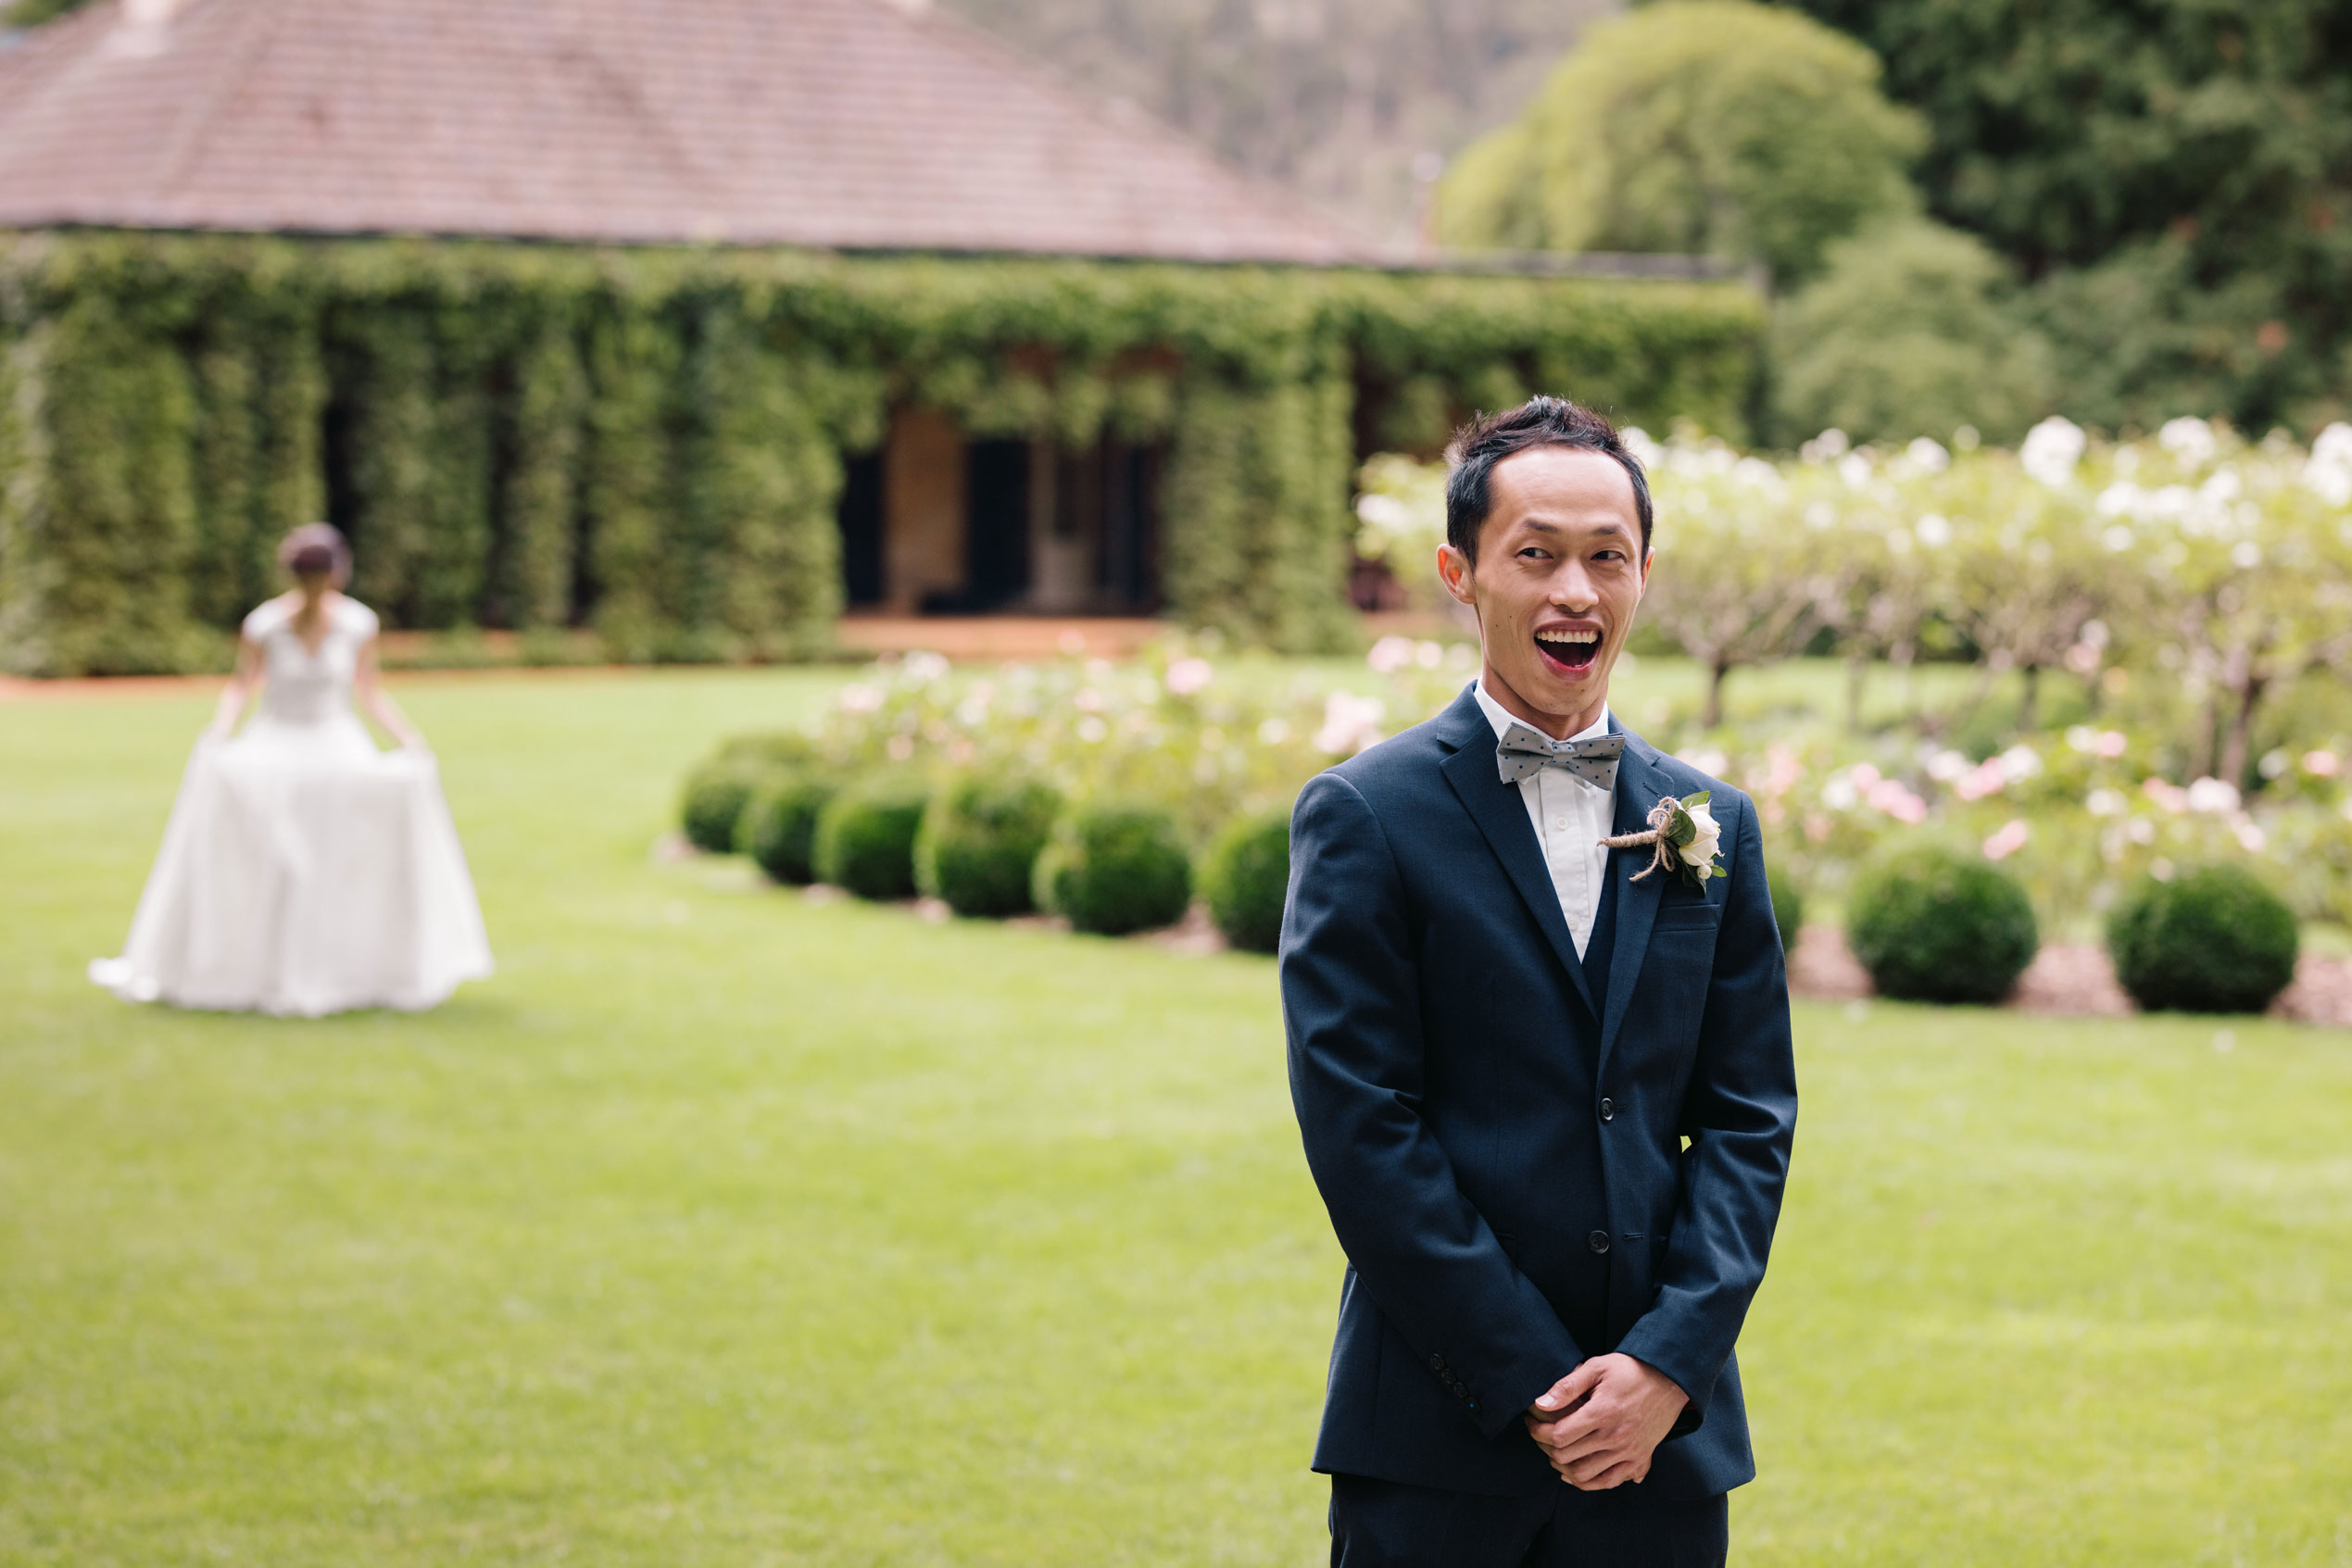 Groom excited to see bride for the first time - first look